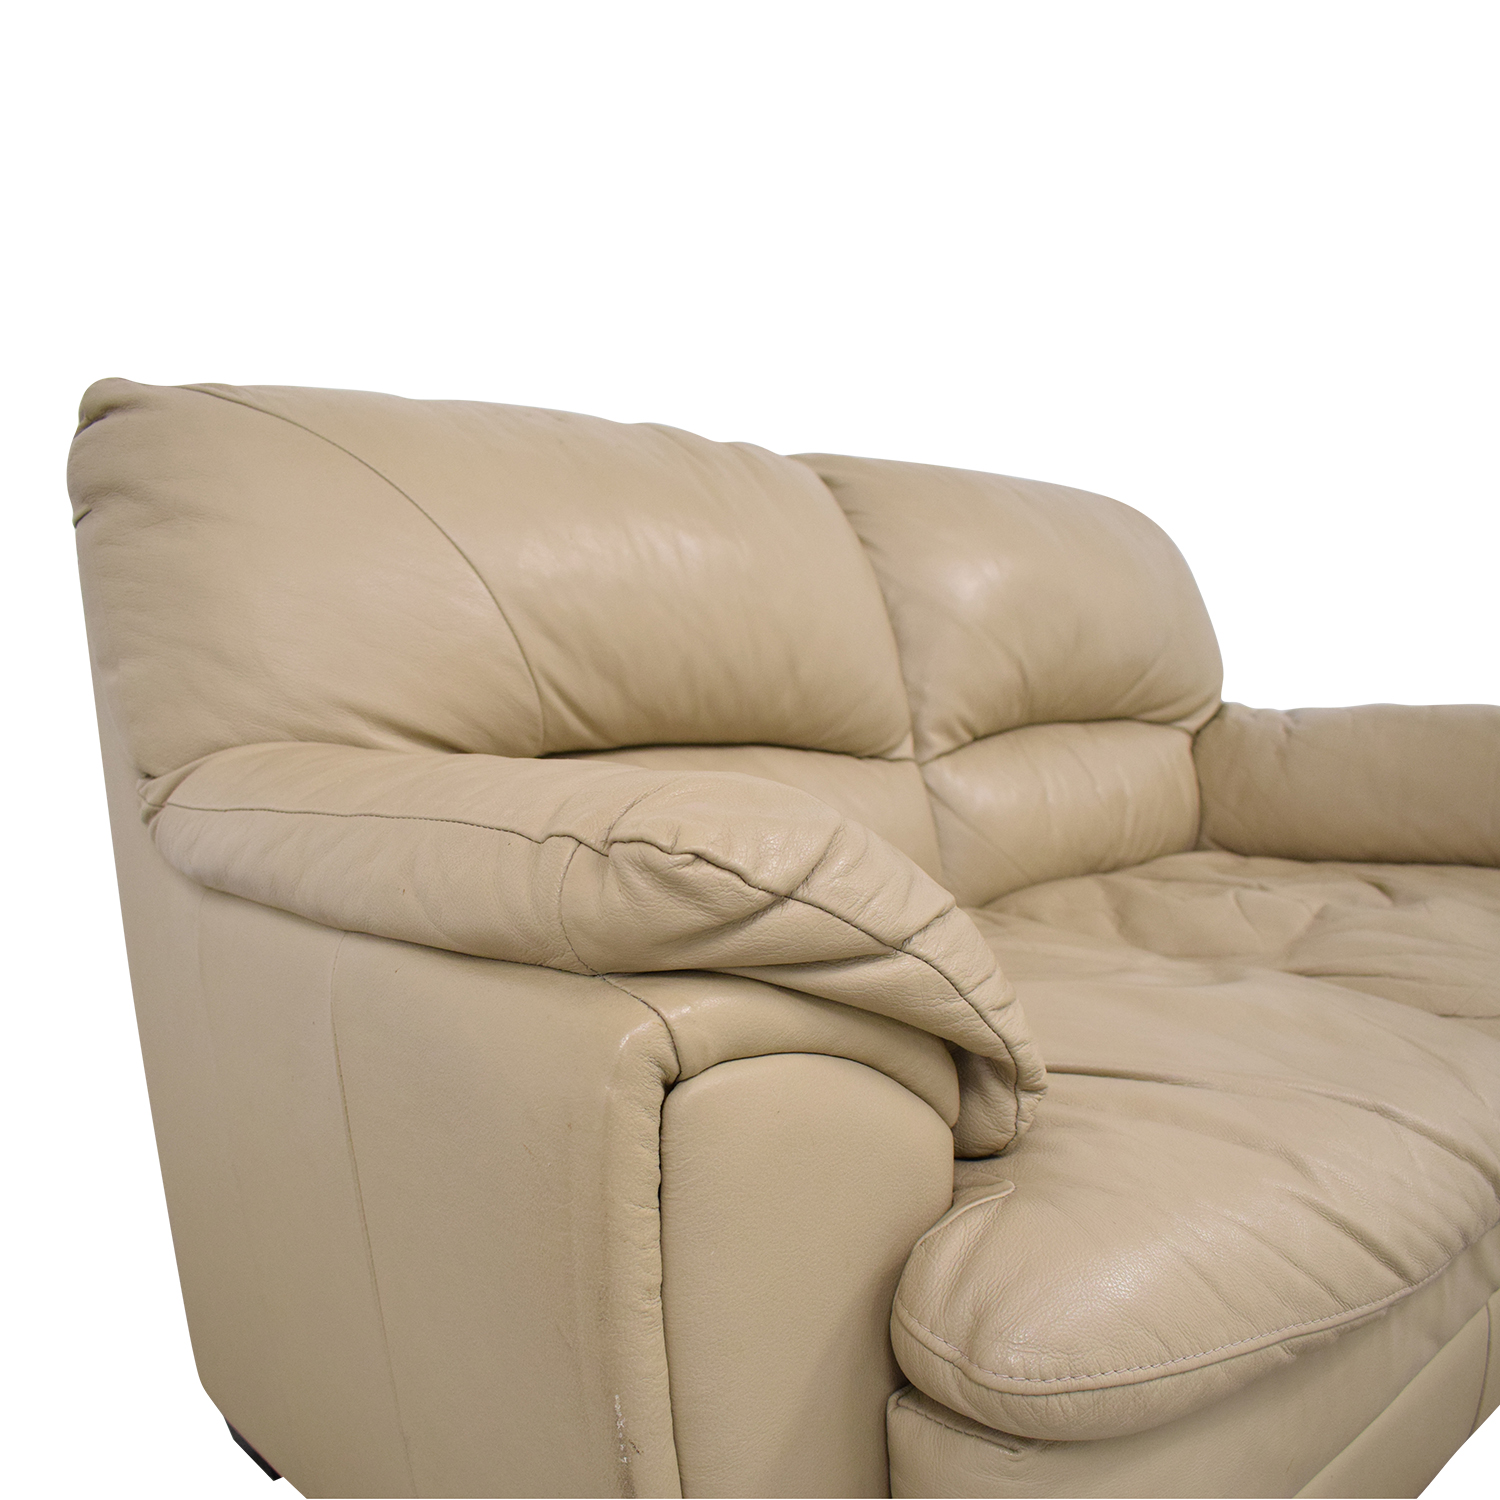 Two Cushion Love Seat second hand